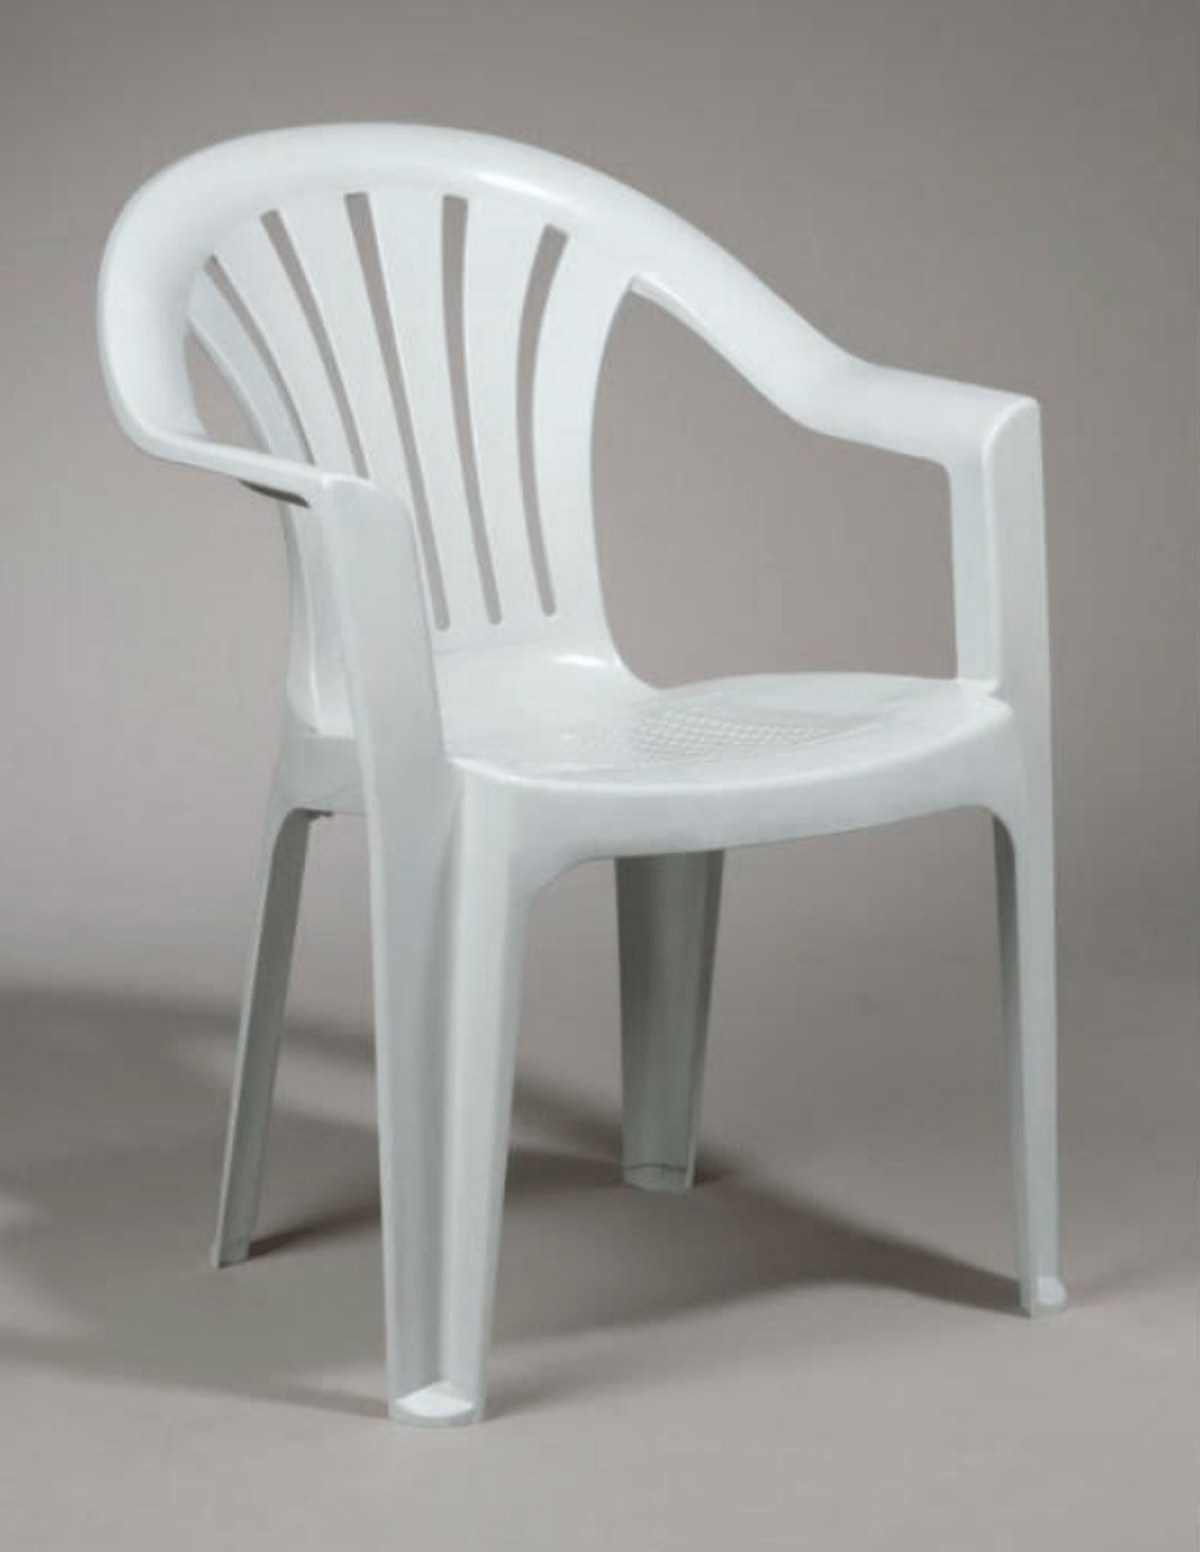 white plastic chairs mainstays table and chair set secondhand tables outdoor furniture 150x for sale